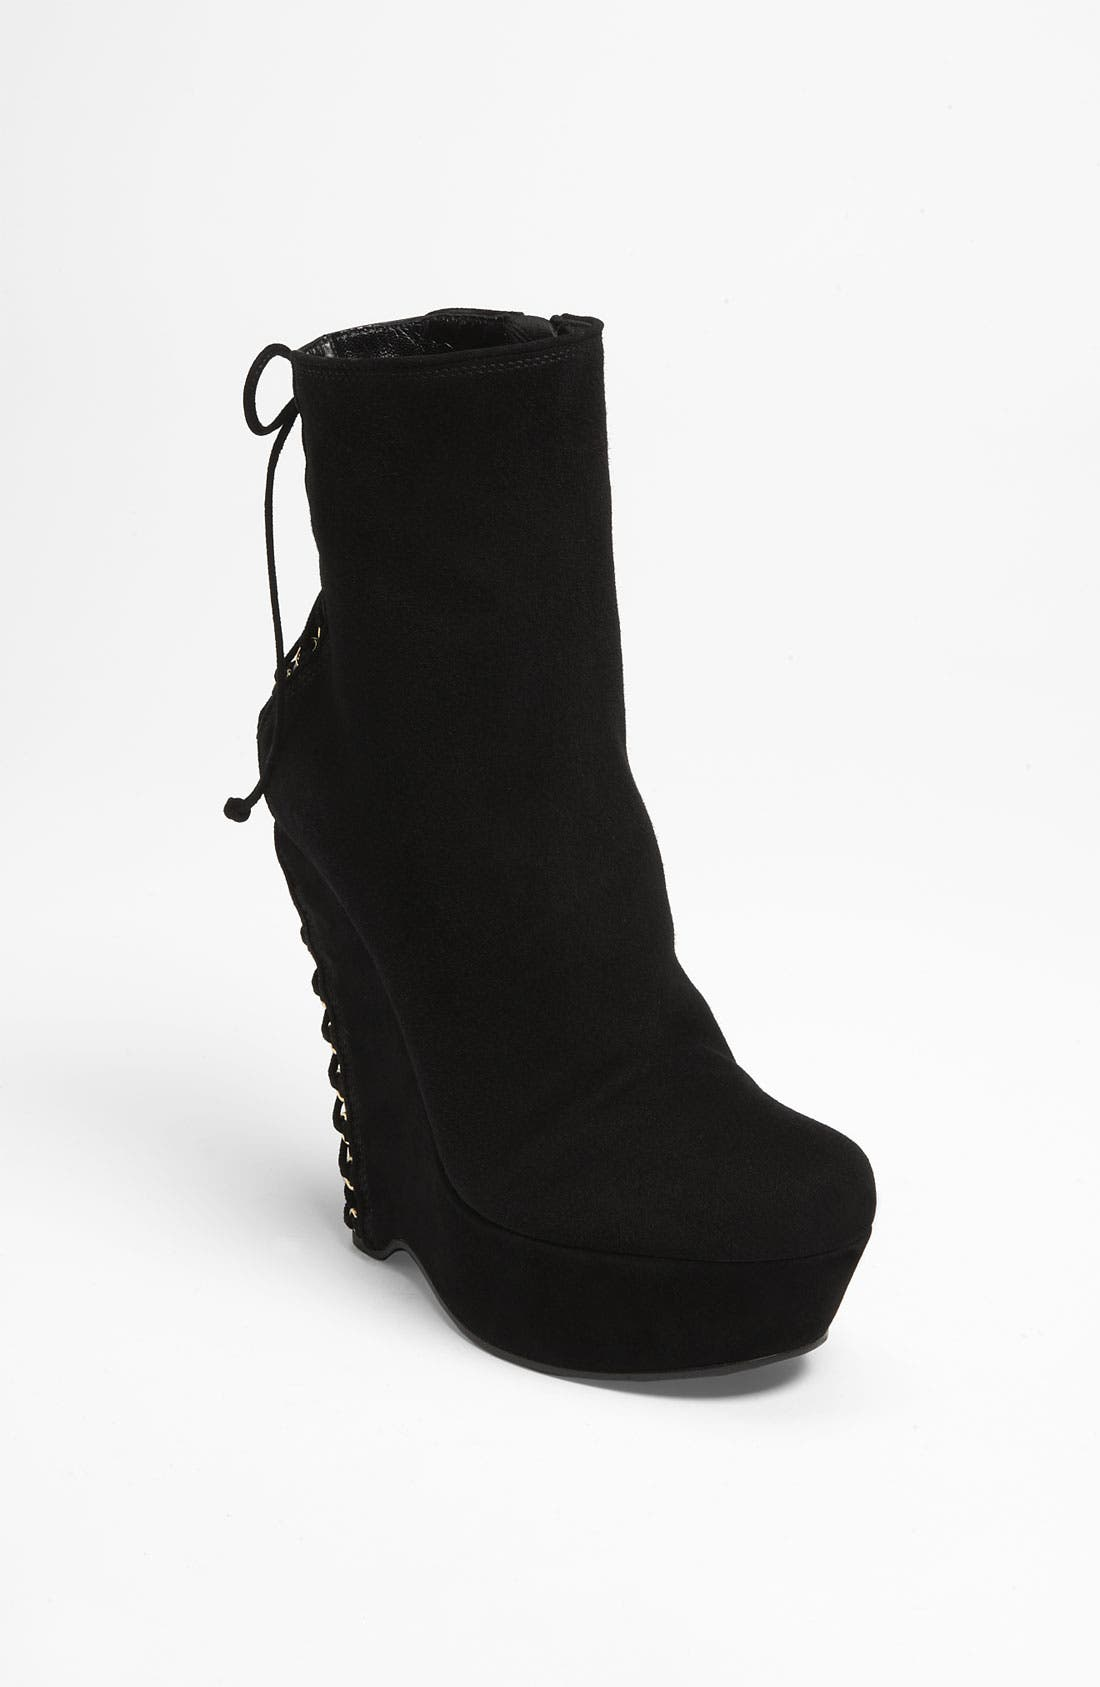 Yves Saint Laurent Corset Suede Boots in China sale online BECnzk